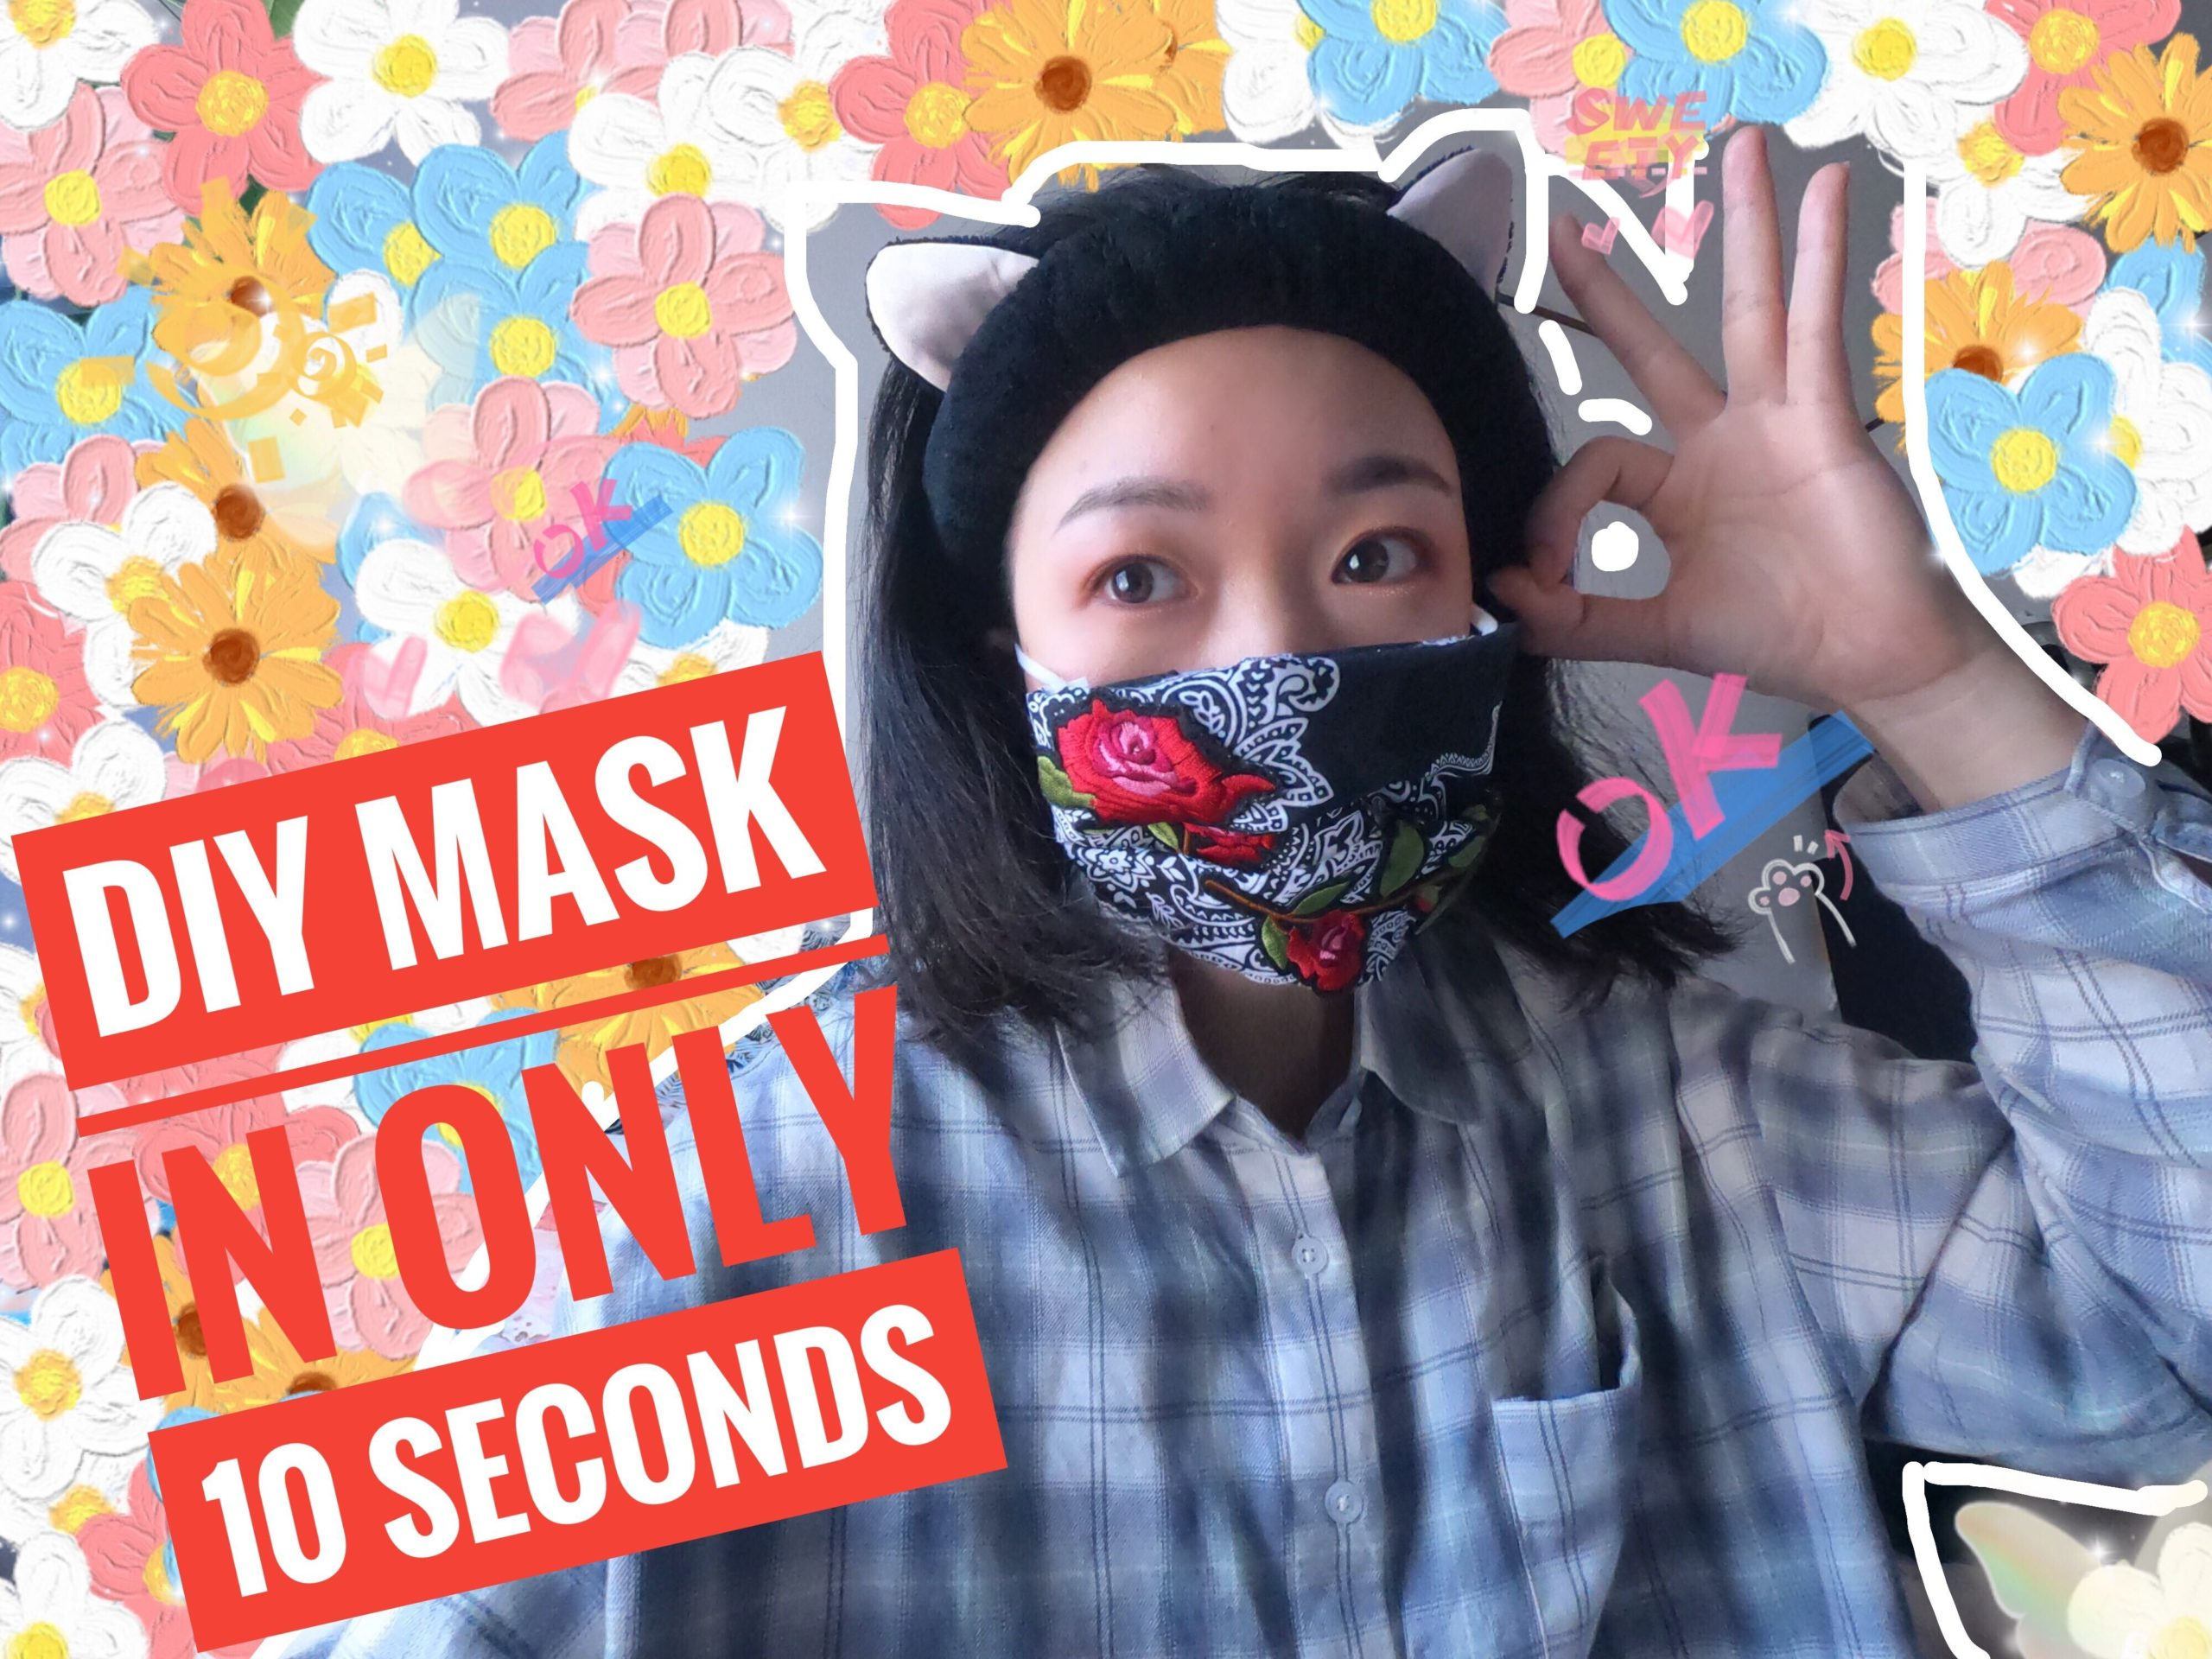 DIY Mask in only 10 seconds